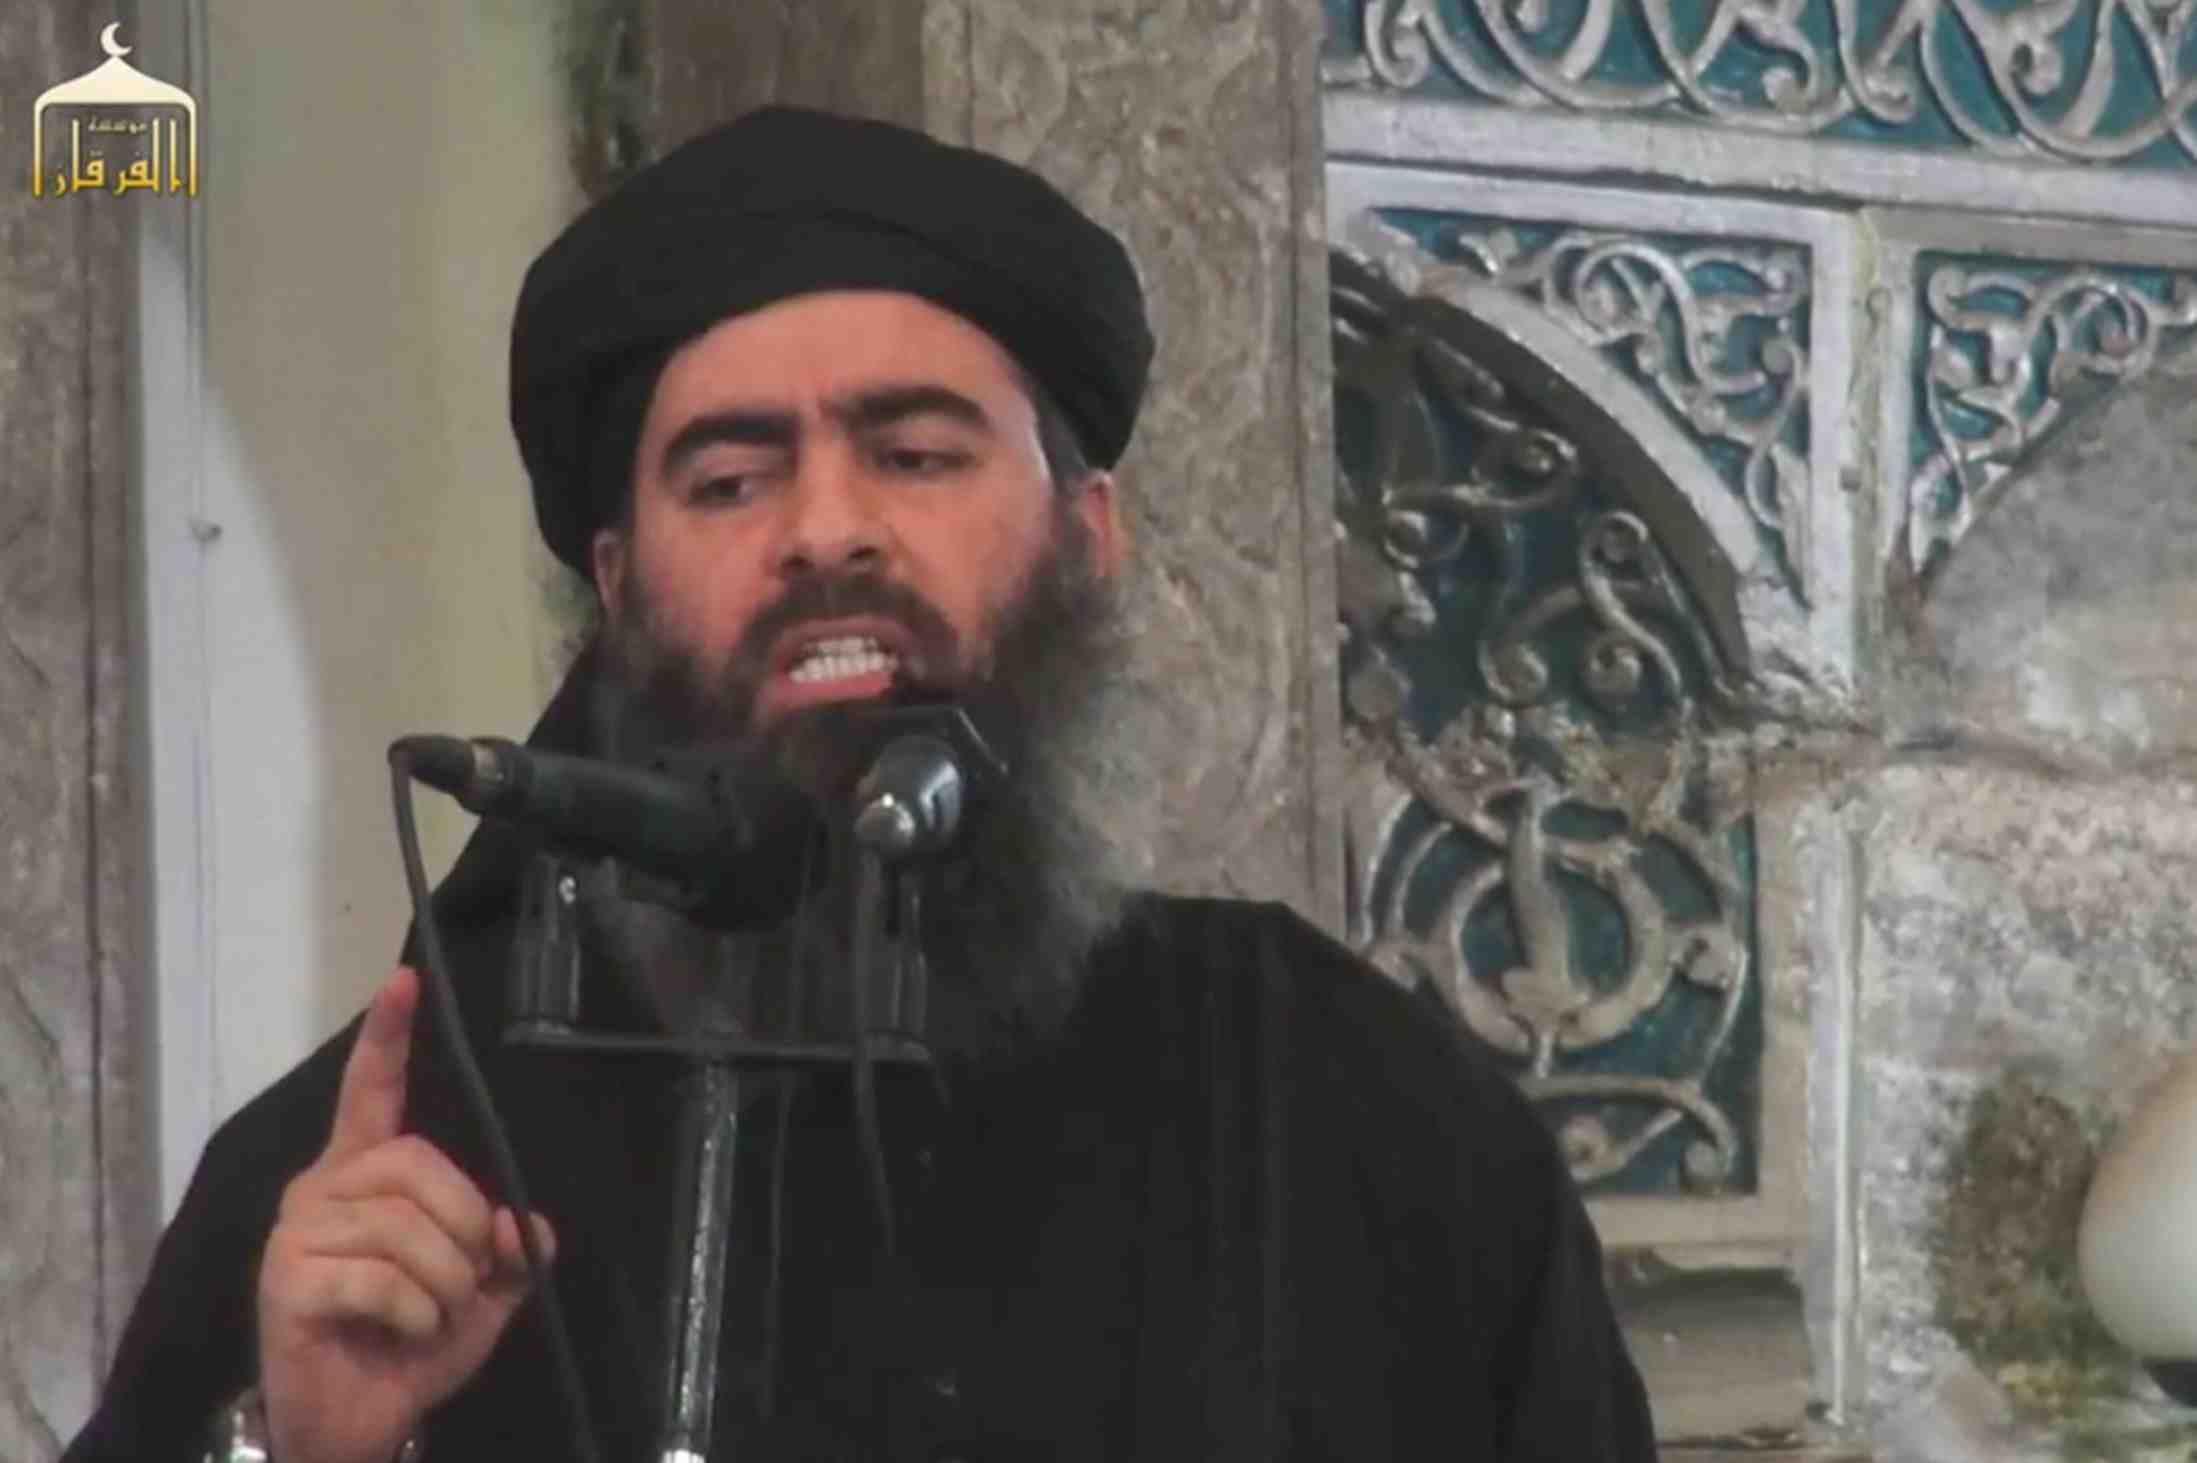 Abu Bakr Al-Baghdadi, self-proclaimed Caliph of the Islamic State in Iraq and Syria (Photo Public Domain)